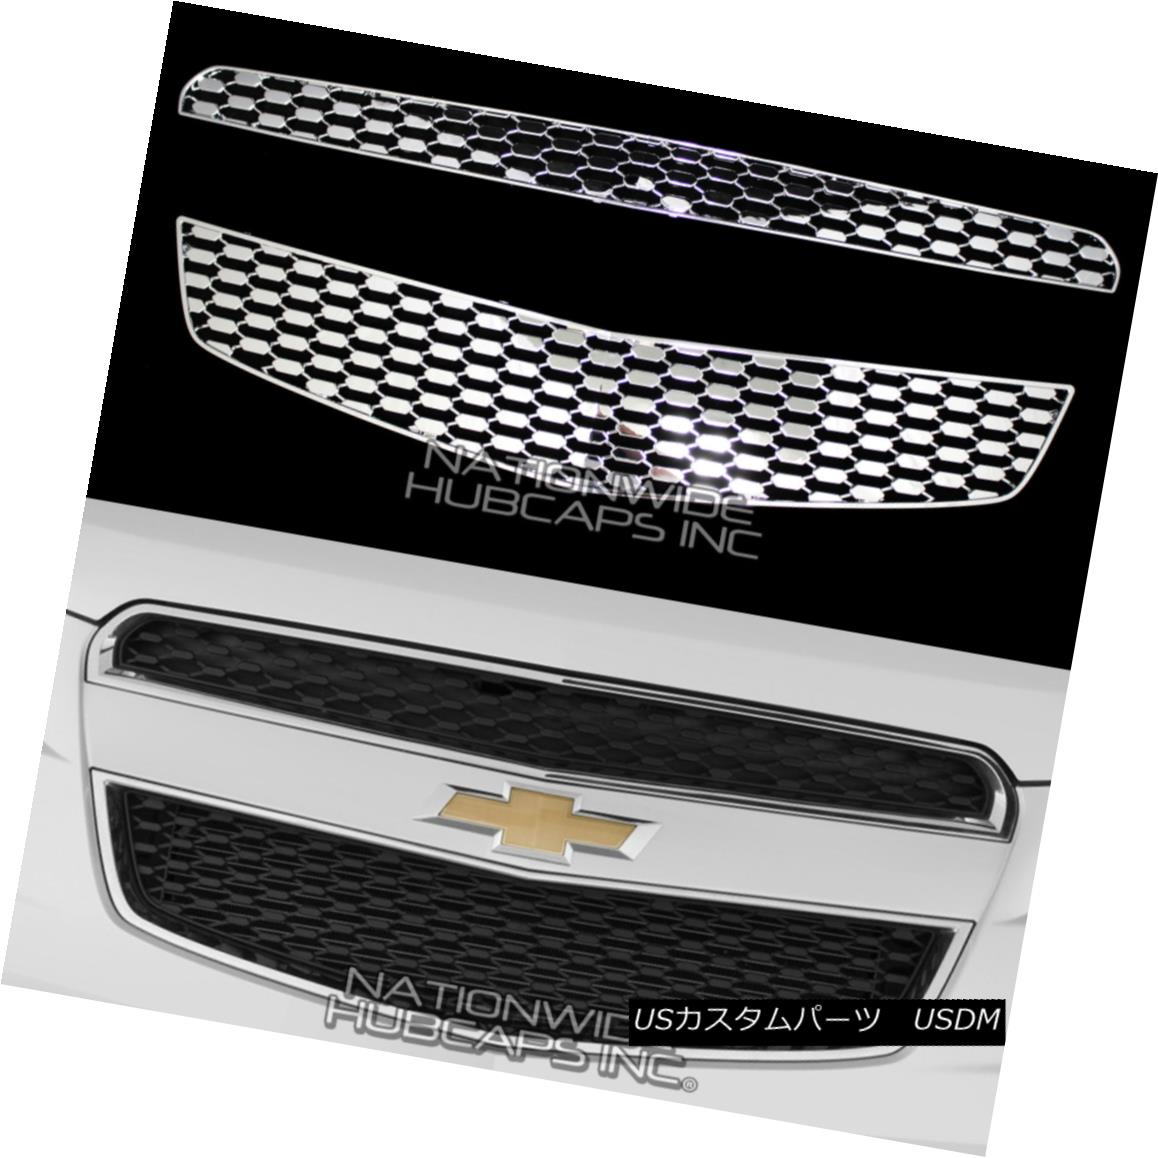 グリル 10-13 CHEVY EQUINOX CHROME Snap On Grille Overlay Front Grill Covers Inserts New 10-13 CHEVY EQUINOX CHROMEスナップオングリルオーバーレイフロントグリルカバーインサート新